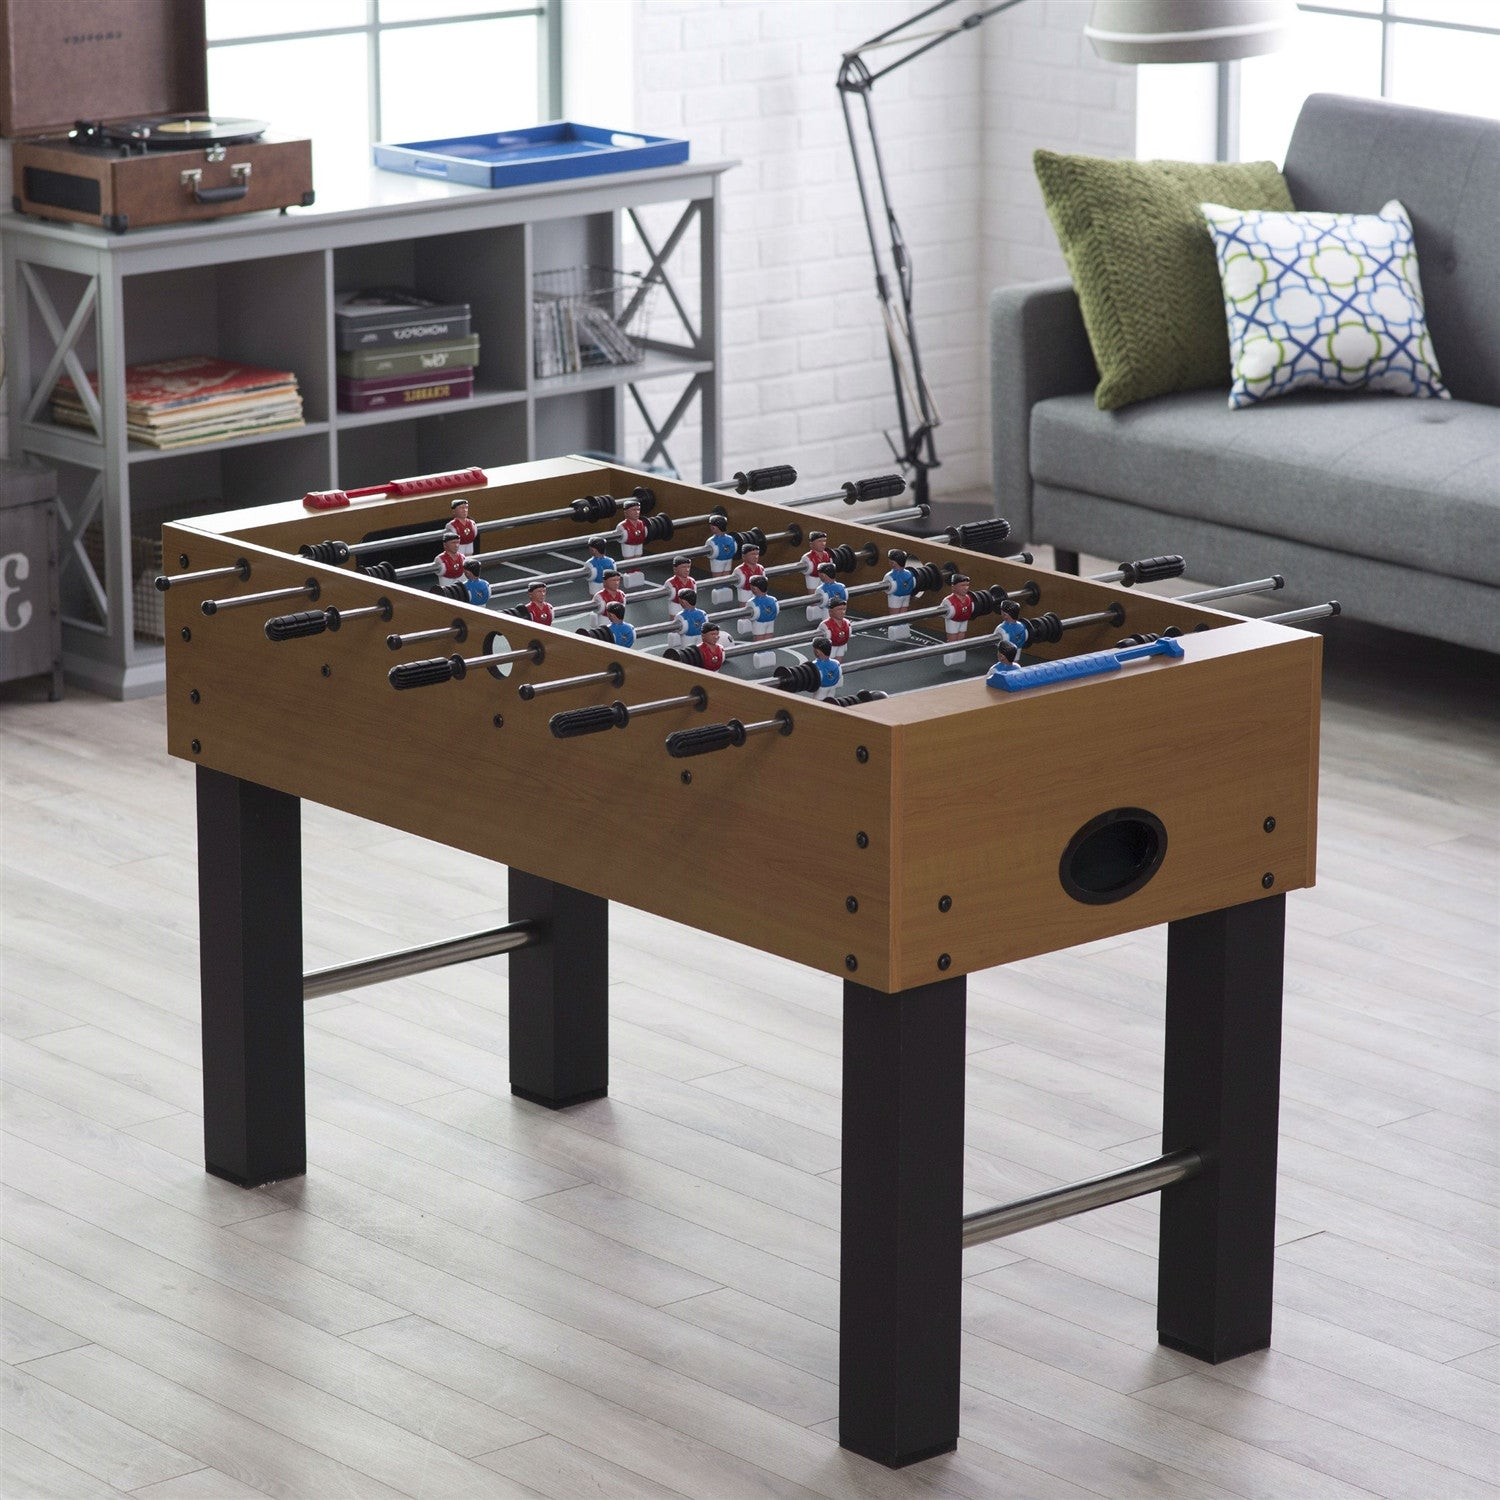 Foosball tables game room 52 inch foosball table with abacus scoring system geotapseo Image collections